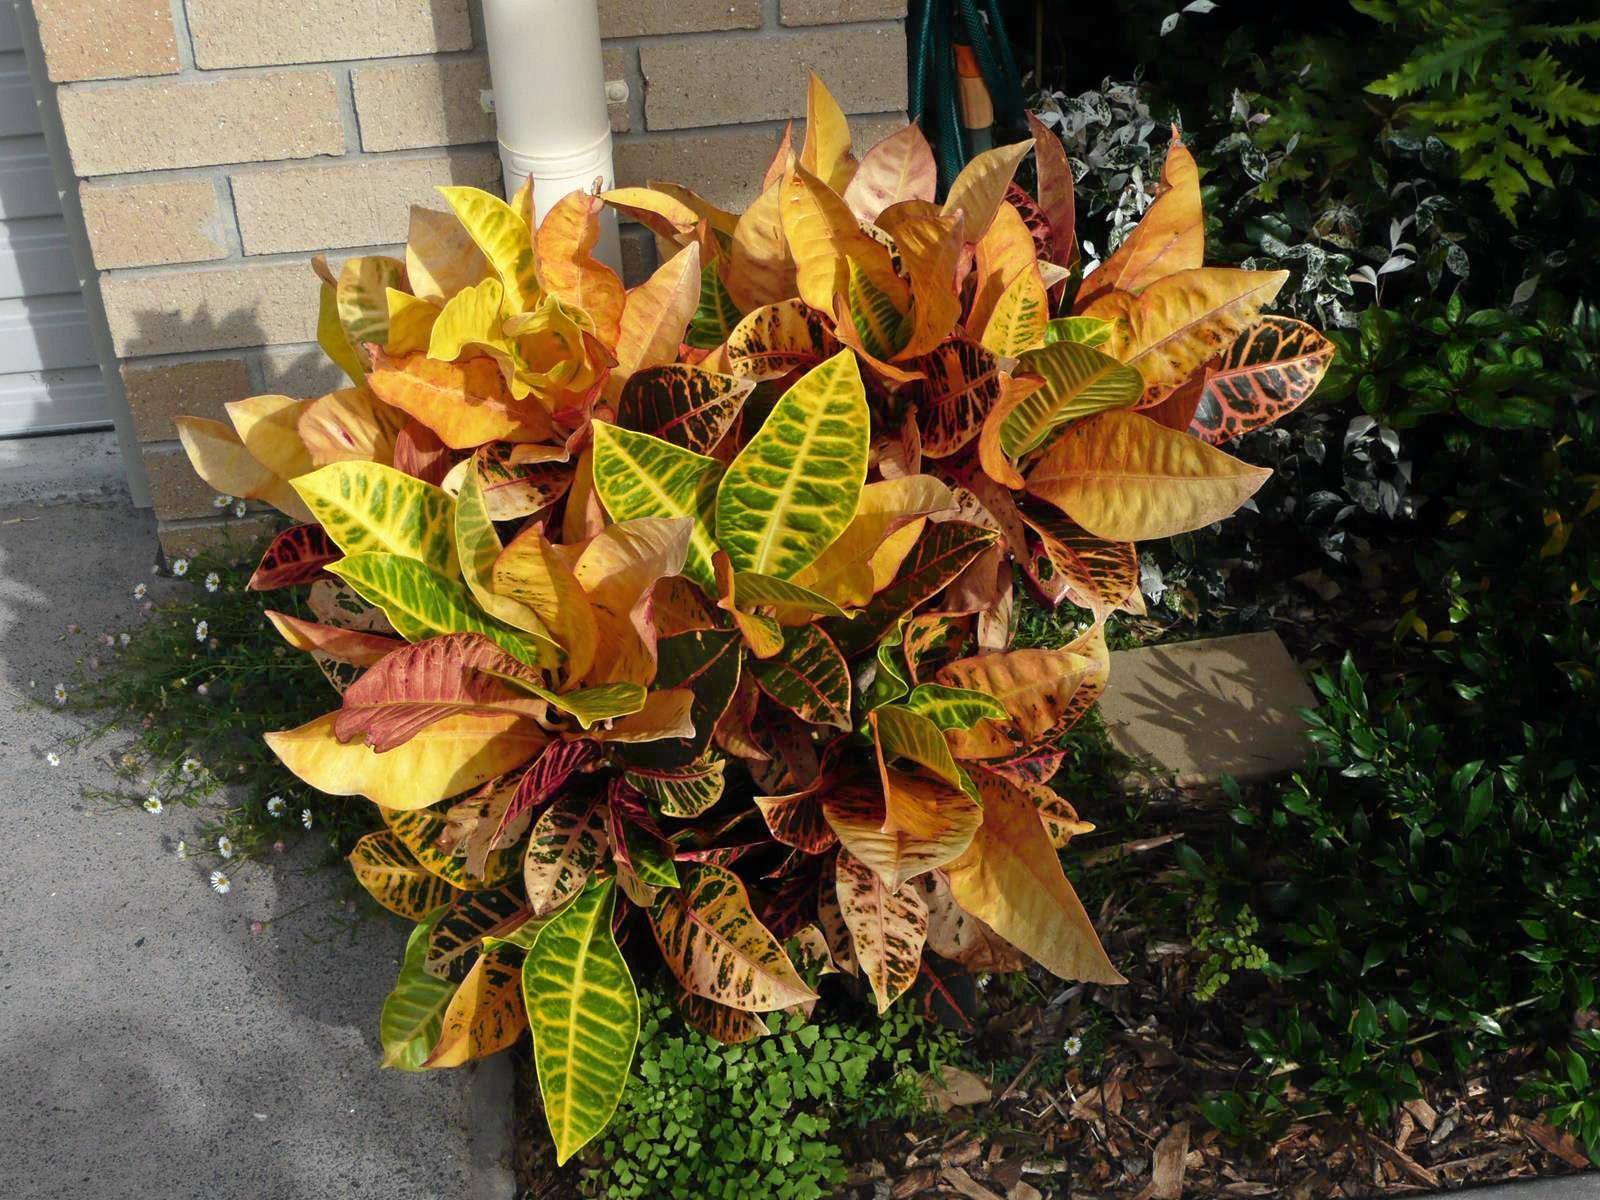 The large leafed Croton adds colour to the surrounding area.